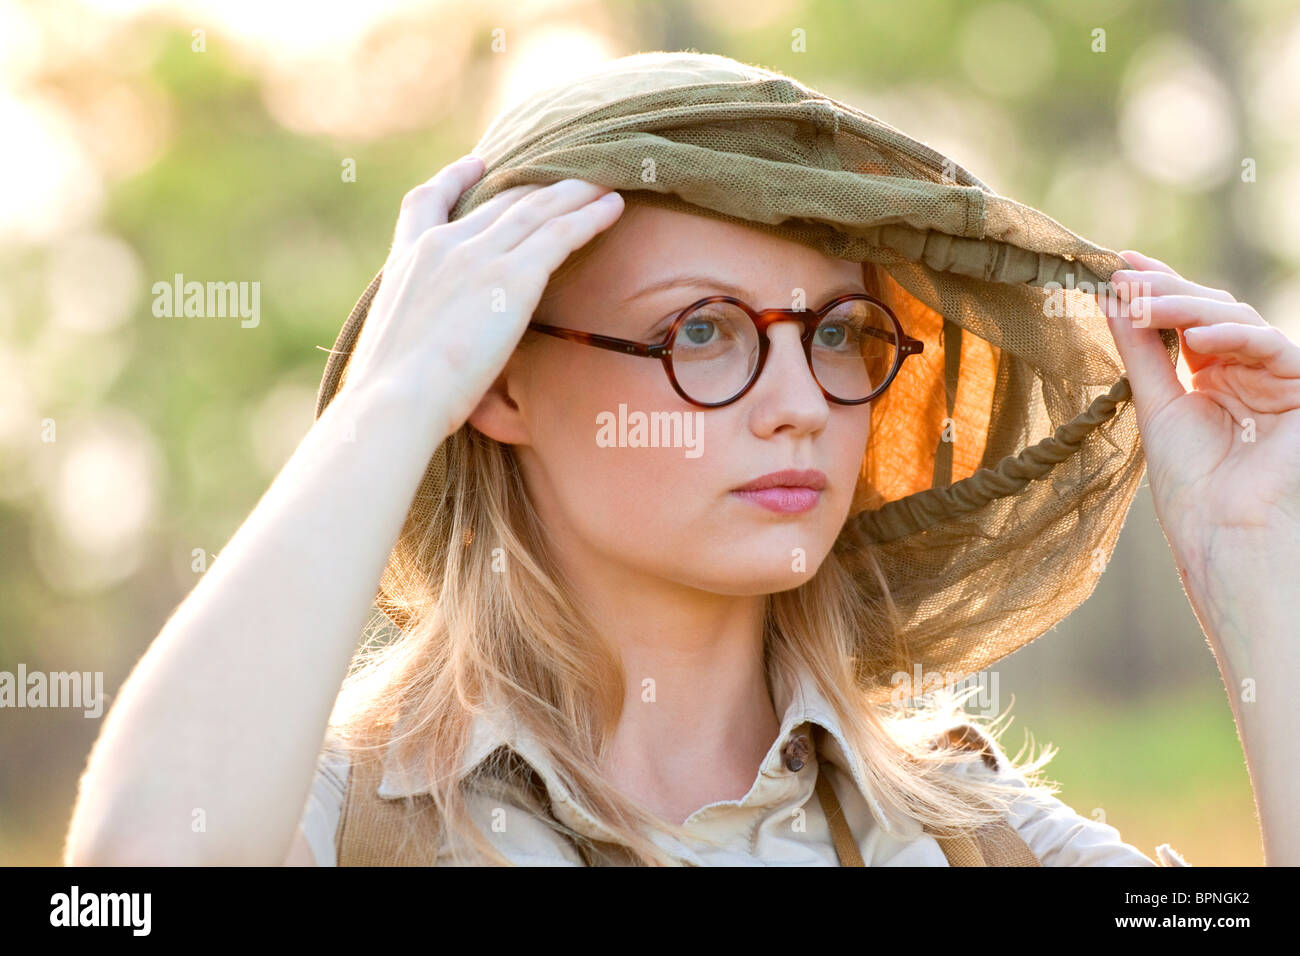 Young woman in eye glasses wearing a mosquito net hood - Stock Image